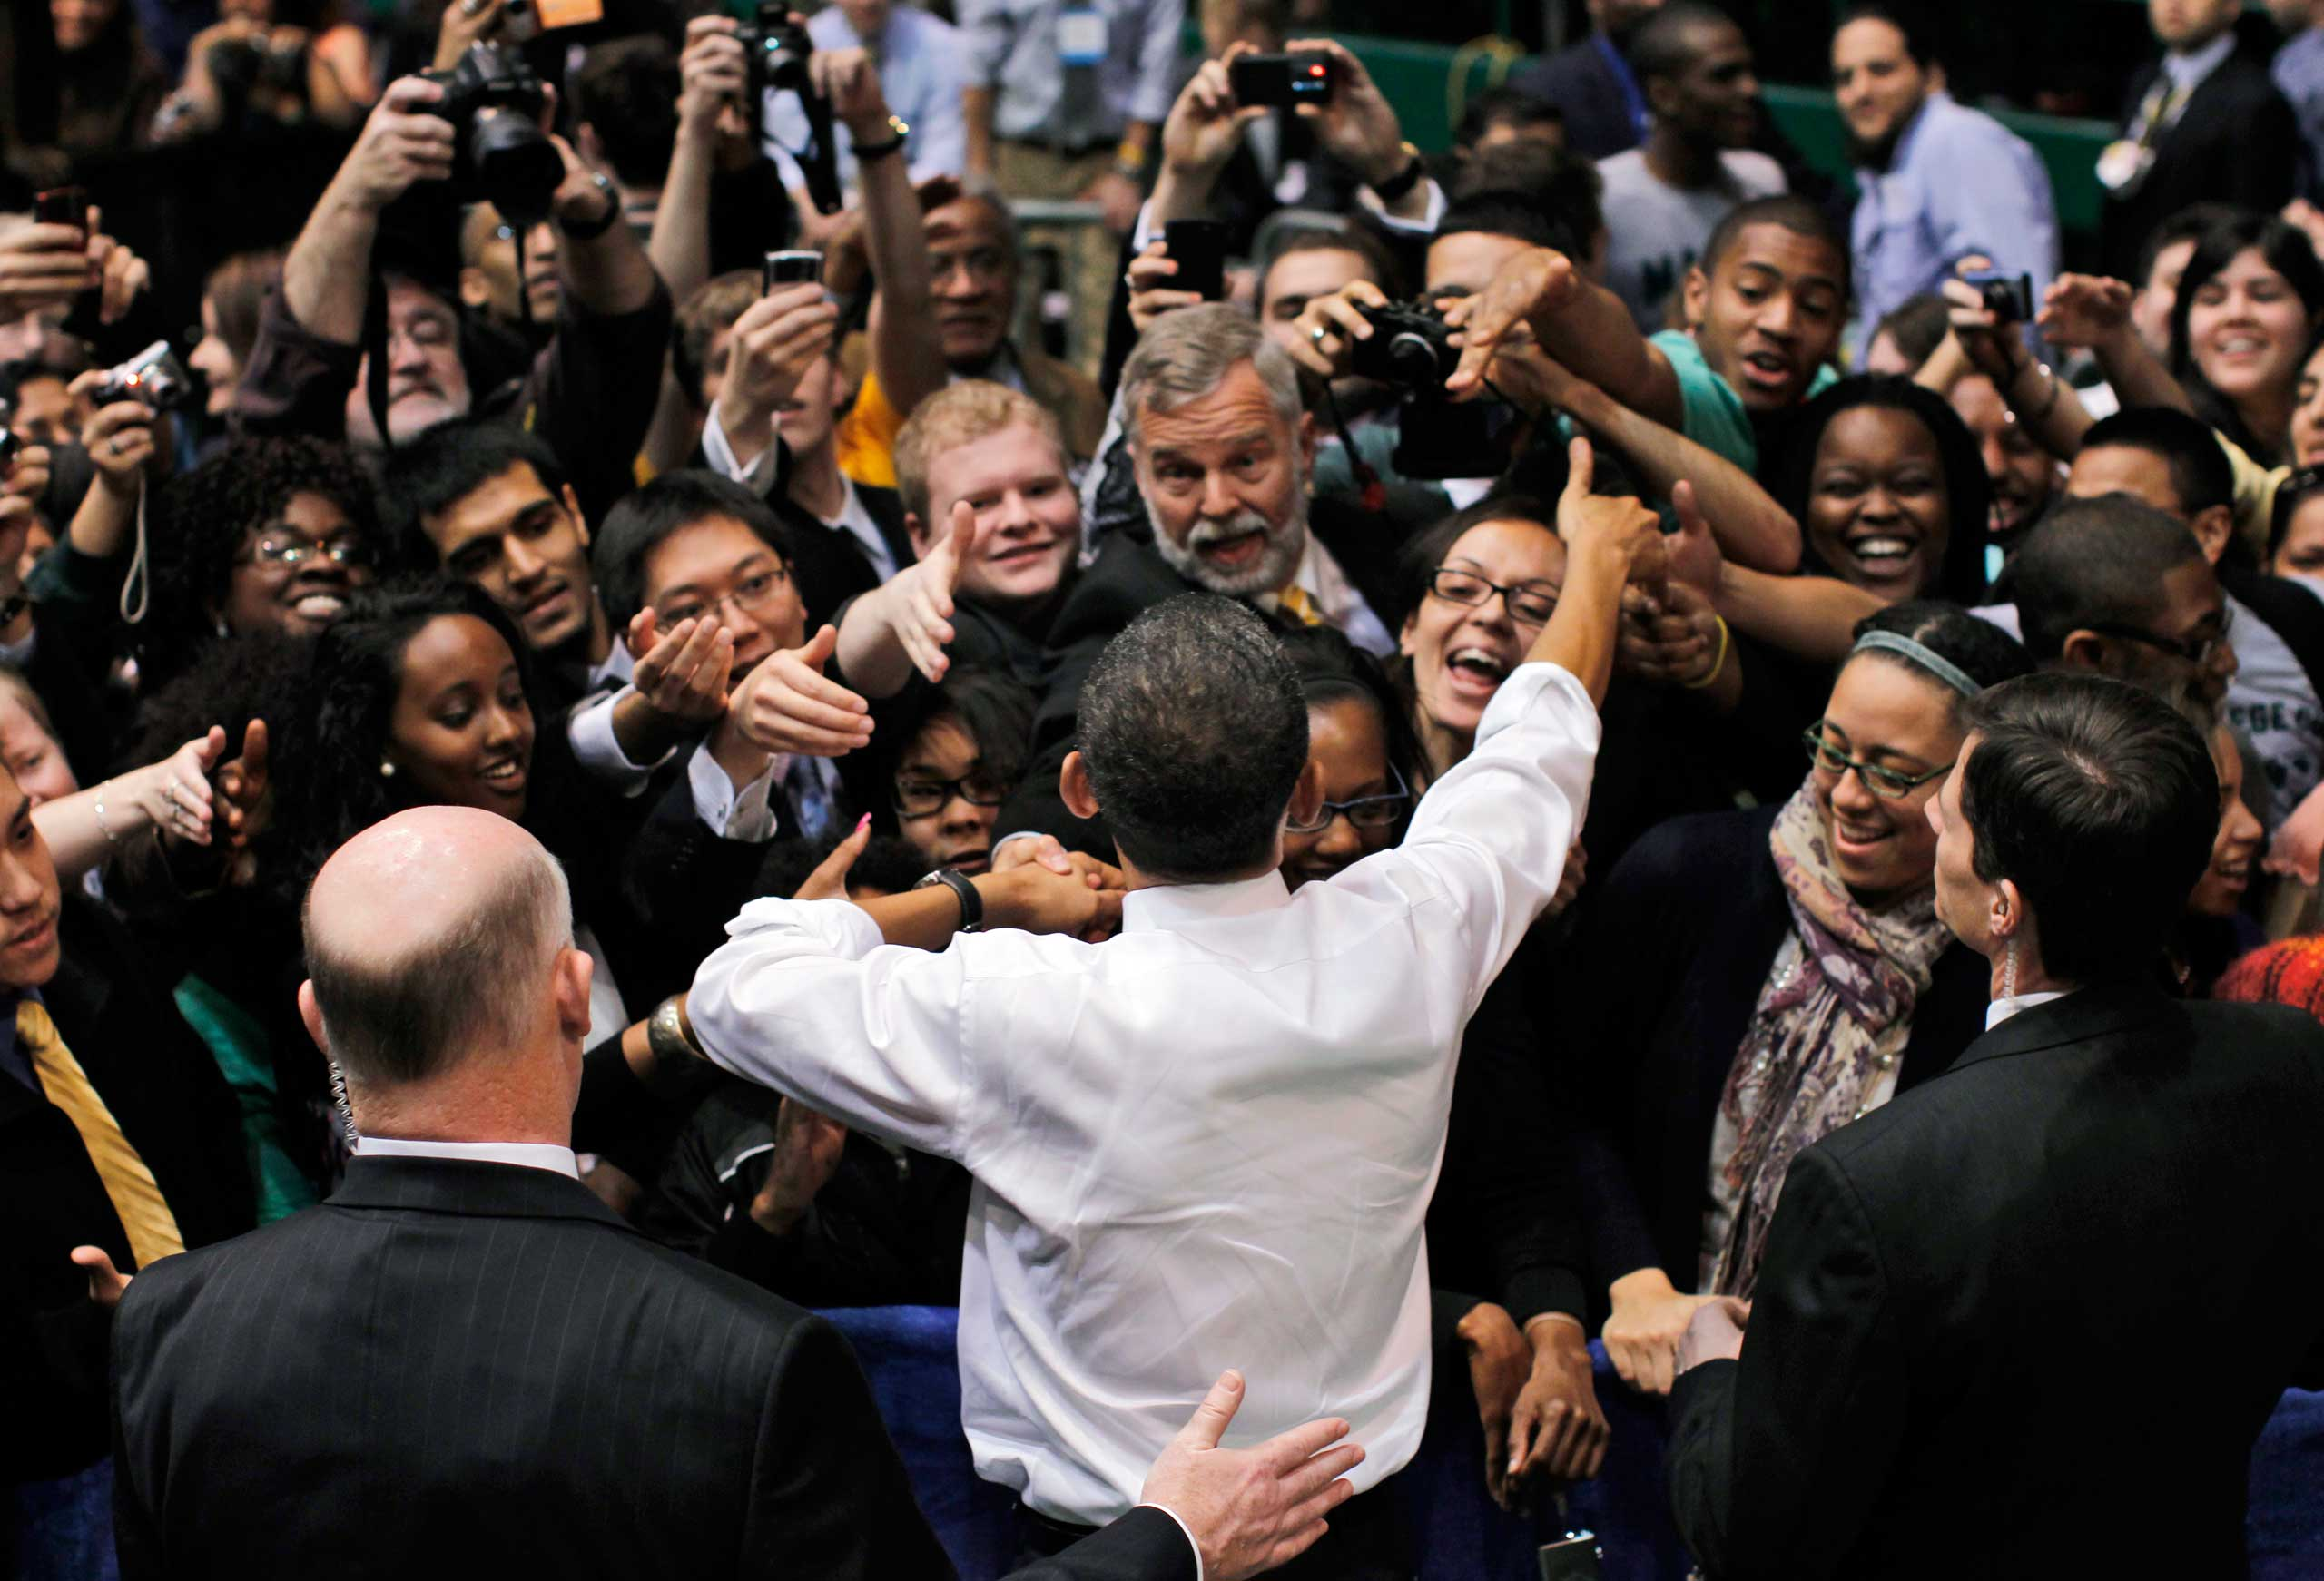 Clancy has President Barack Obama's back during a frenzied meet-and-greet with the audience after speaking about health care reform at the Patriot Center at George Mason University in Fairfax, Va. on March 19, 2010.